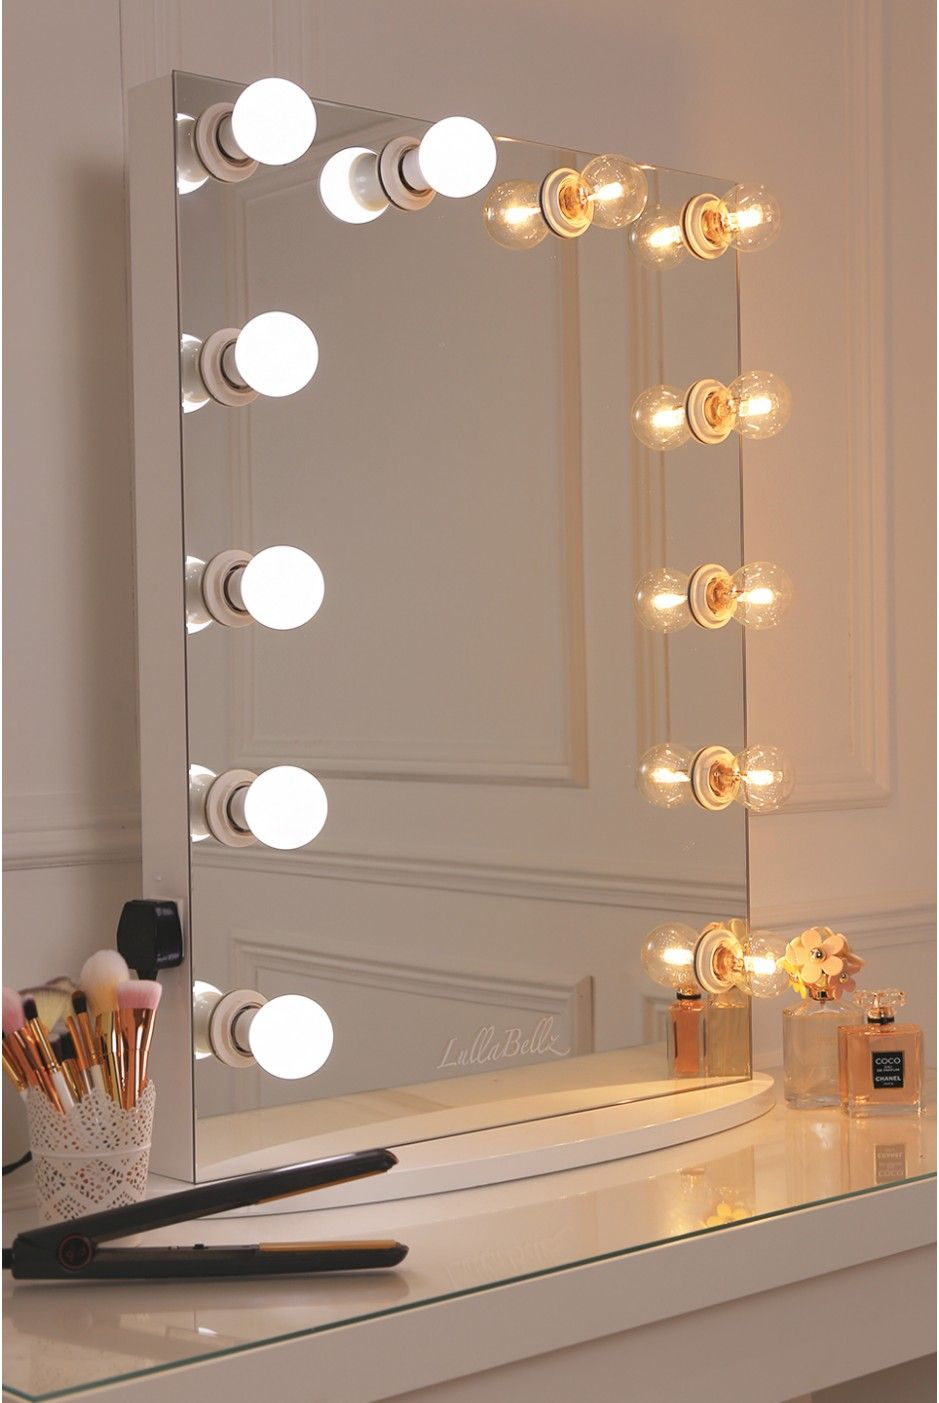 vanity mirror with a pure white finish framed with 12 led golf size light bu. Black Bedroom Furniture Sets. Home Design Ideas